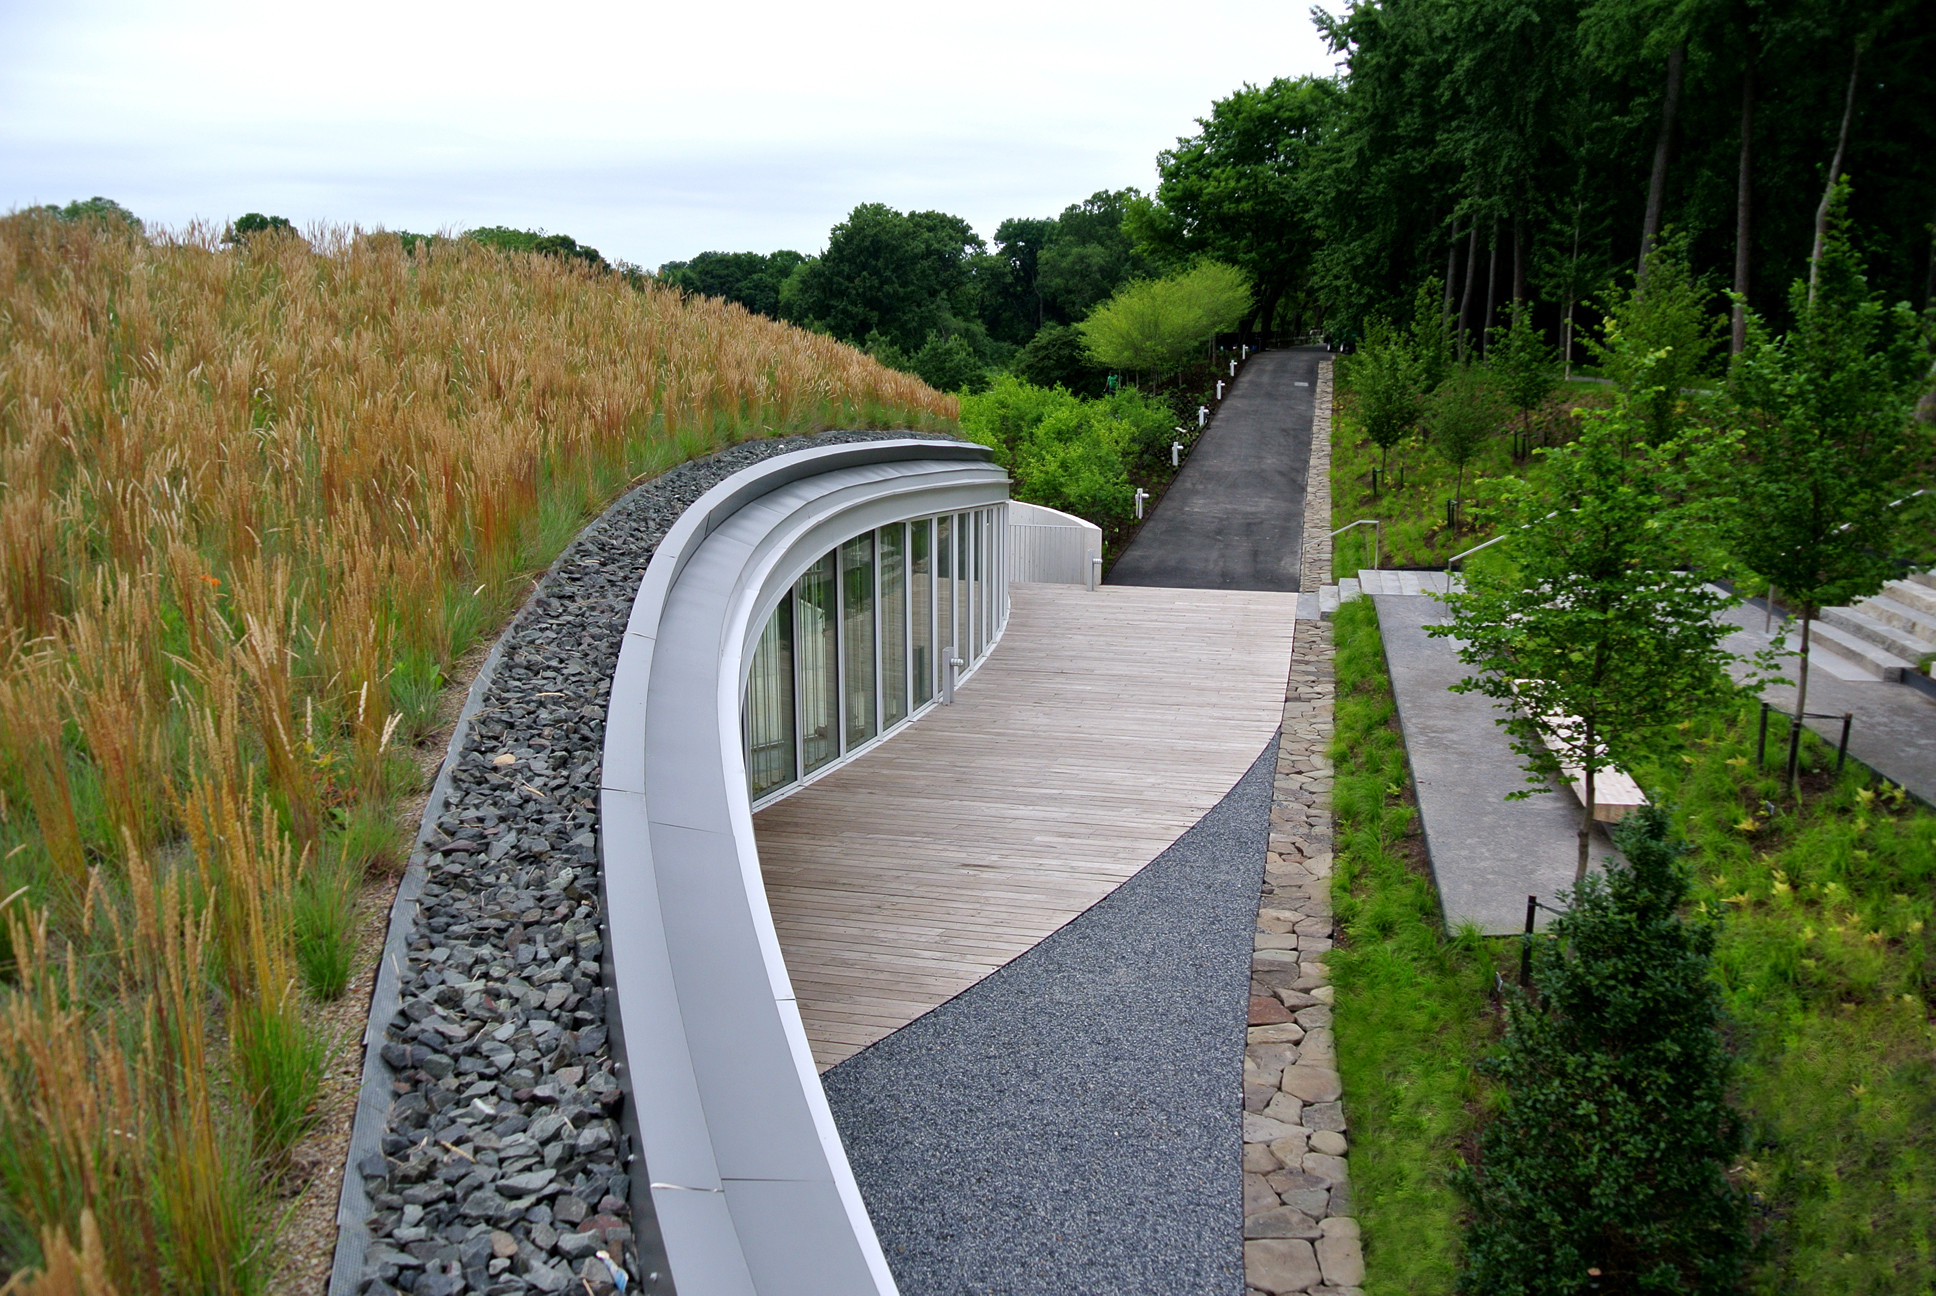 Gallery of Brooklyn Botanic Garden Visitor Center / Weiss/Manfredi